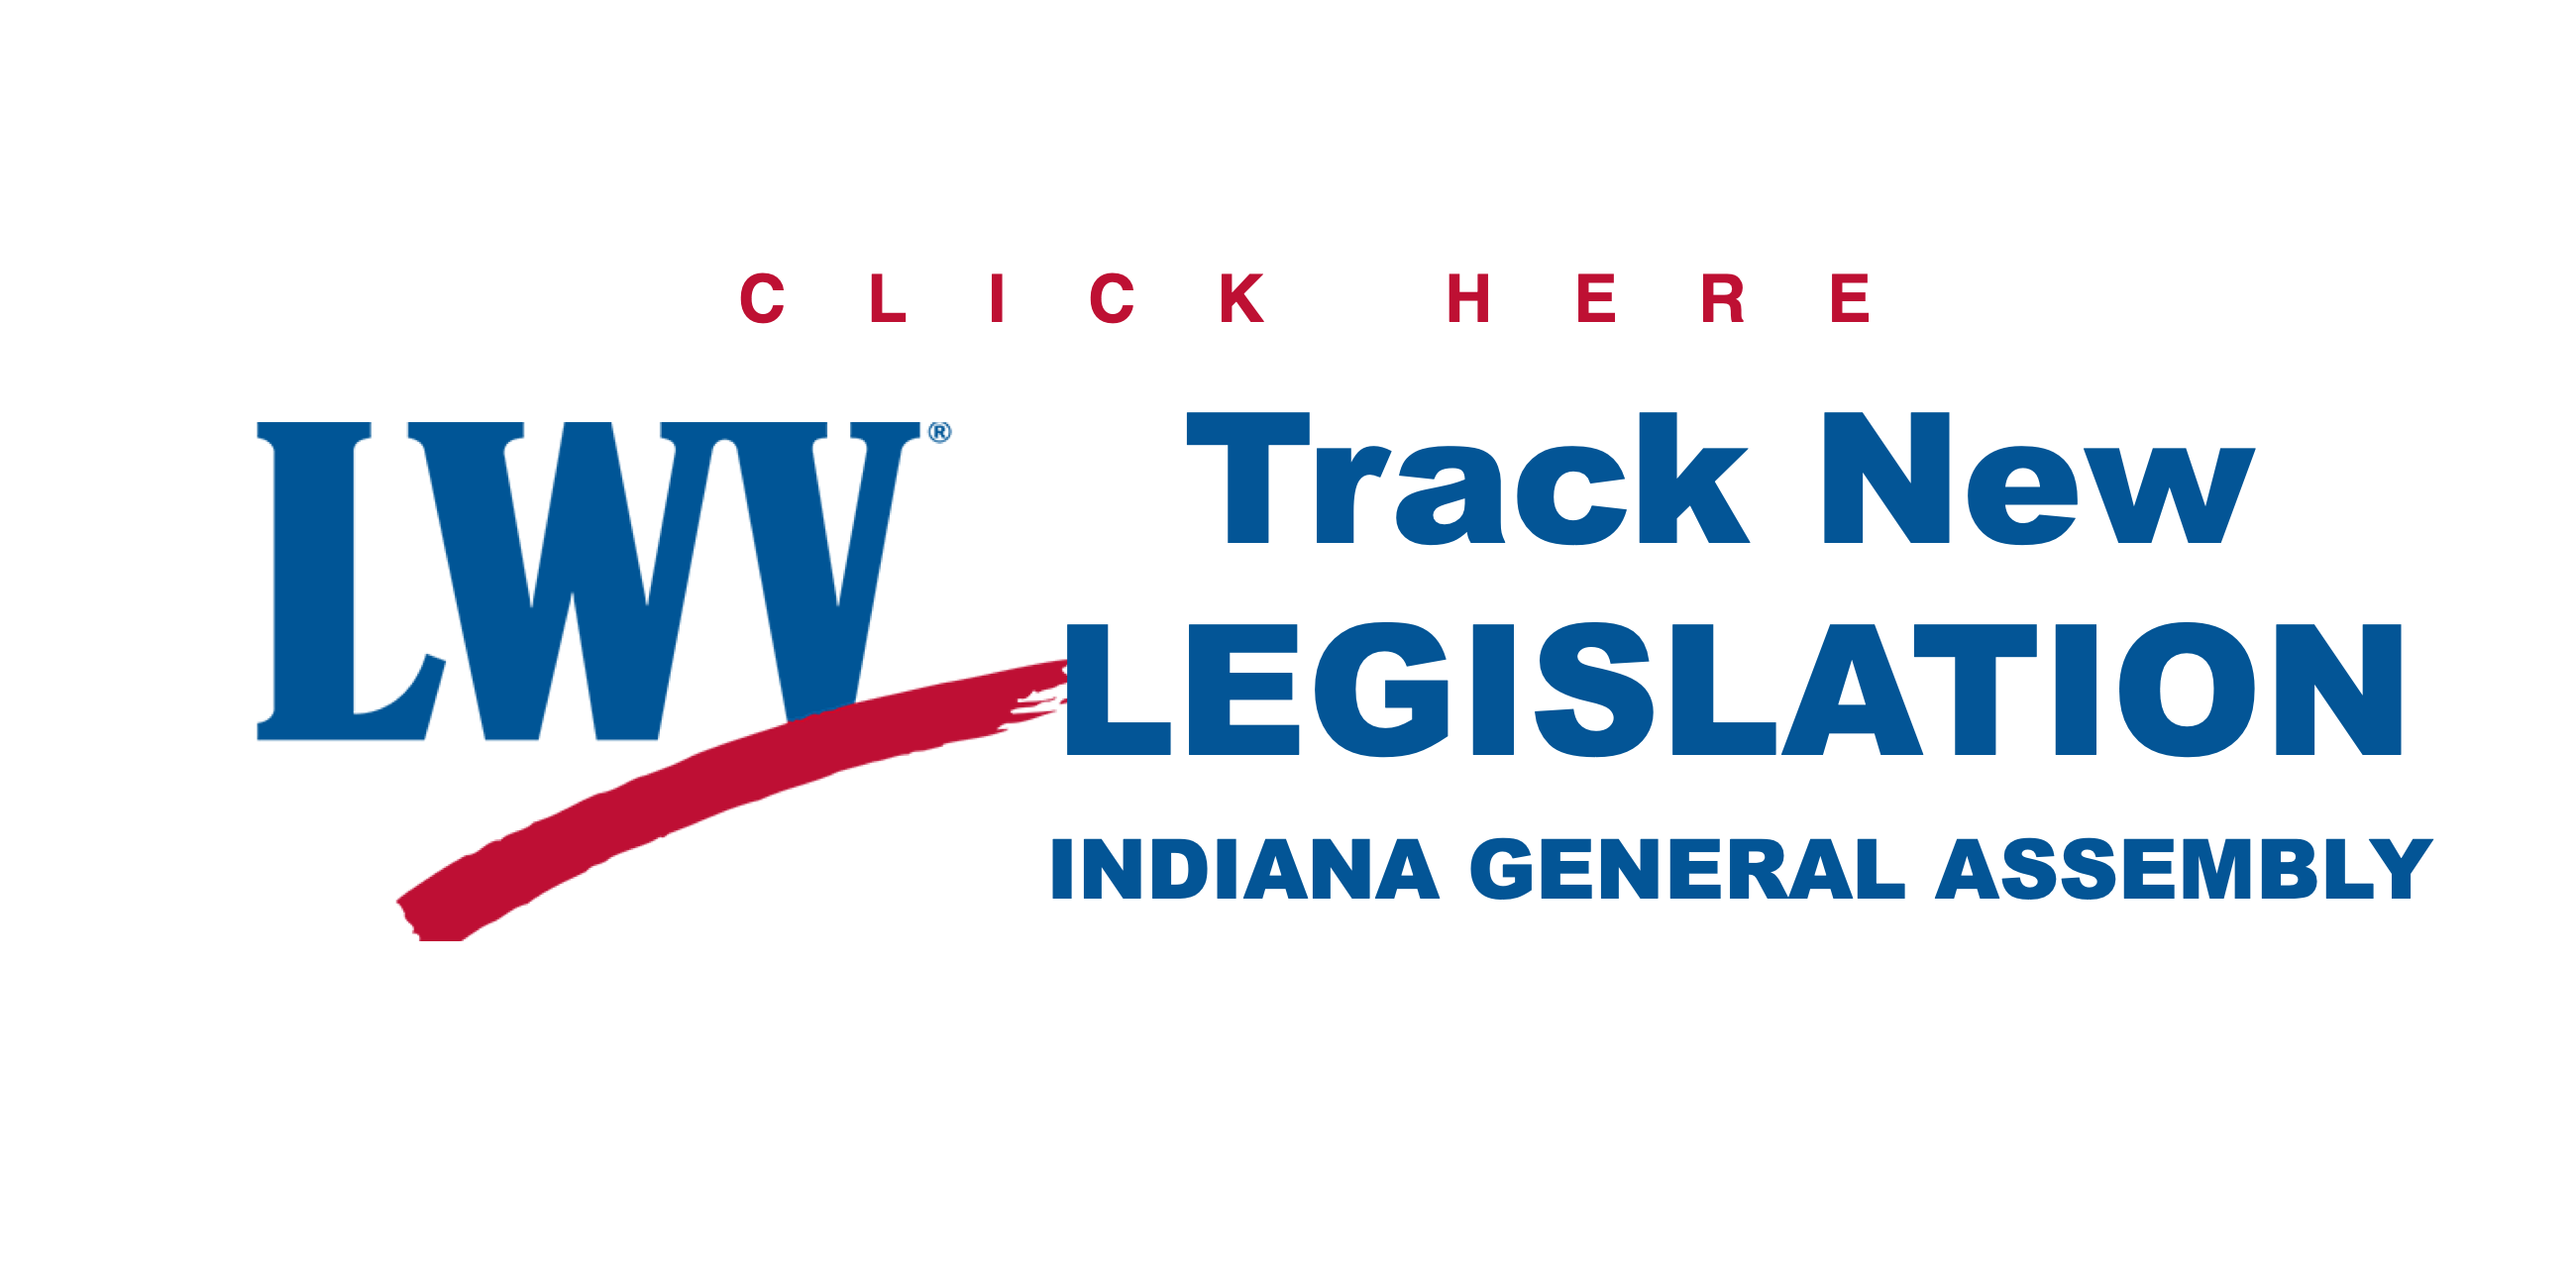 Click Here to Track New Legislation from Indiana General Assembly